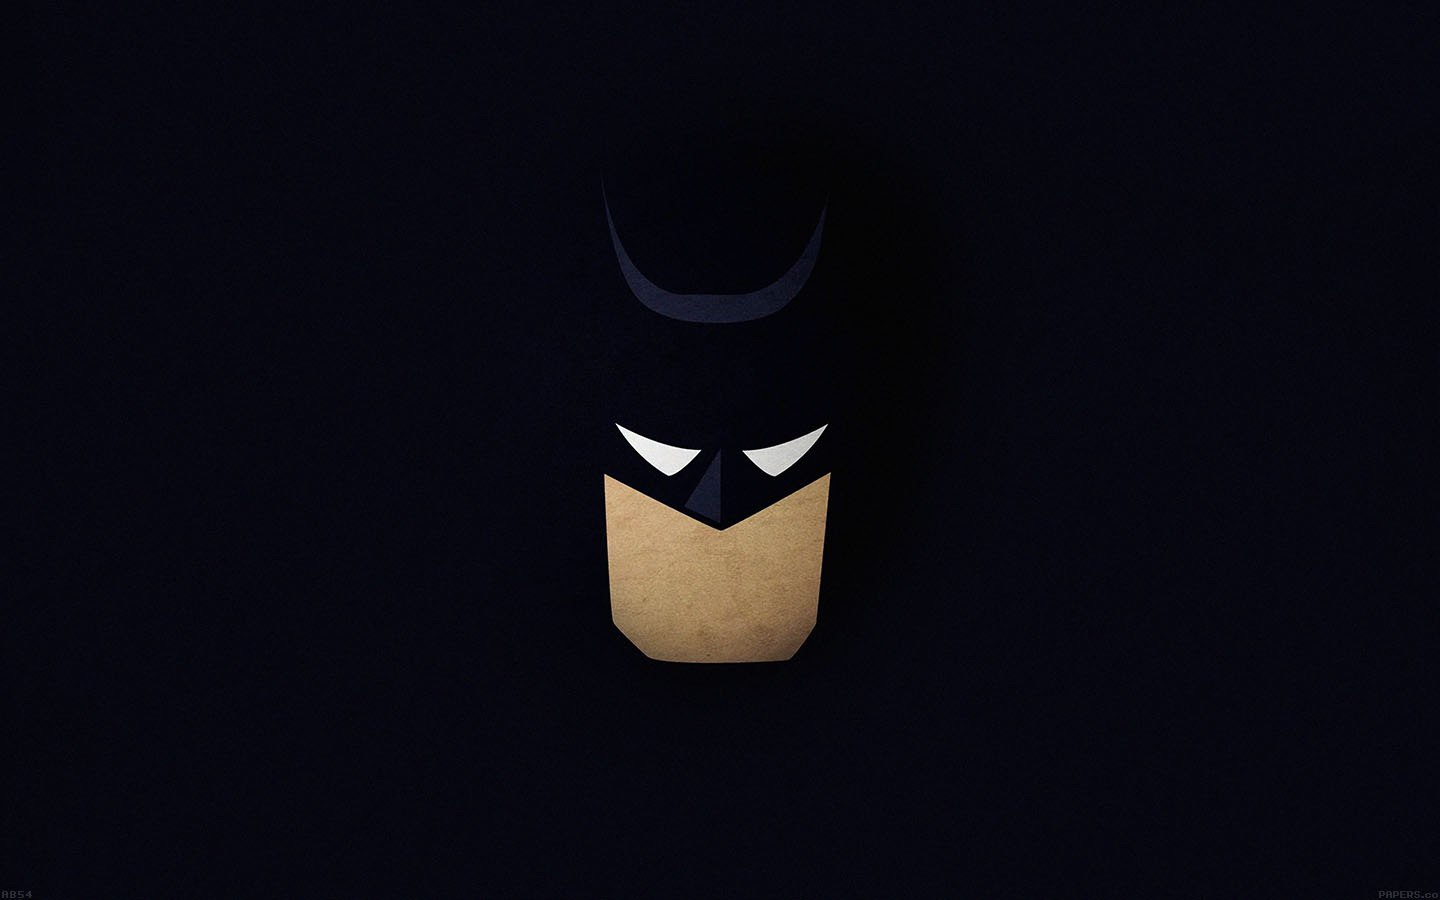 Cute Cartoon Hd Wallpapers For Android Ab54 Wallpaper Batman Face Dark Minimal Papers Co